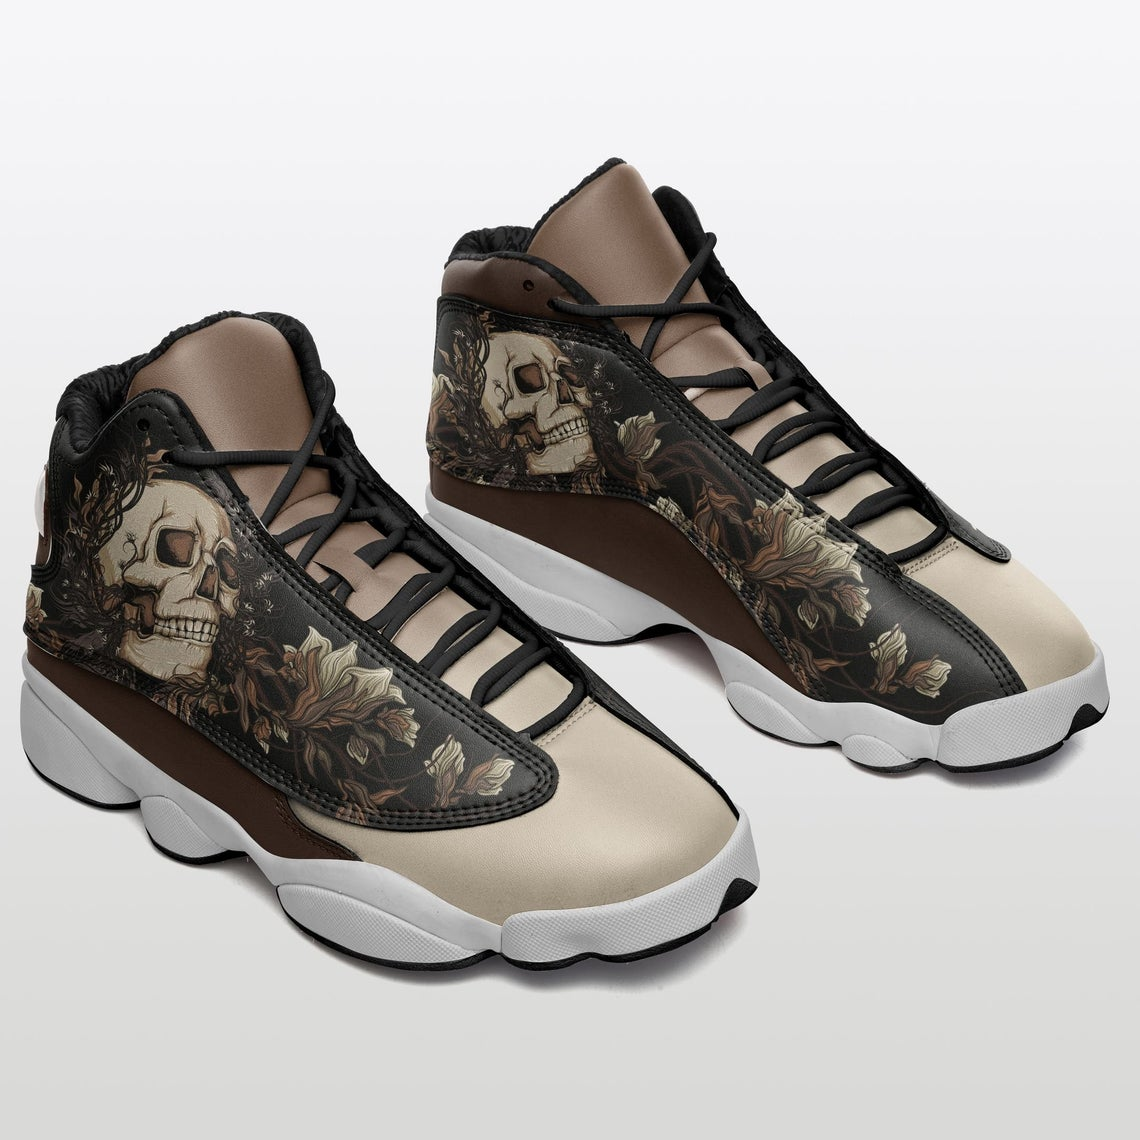 Skull Sku 32 Air Jordan Shoes